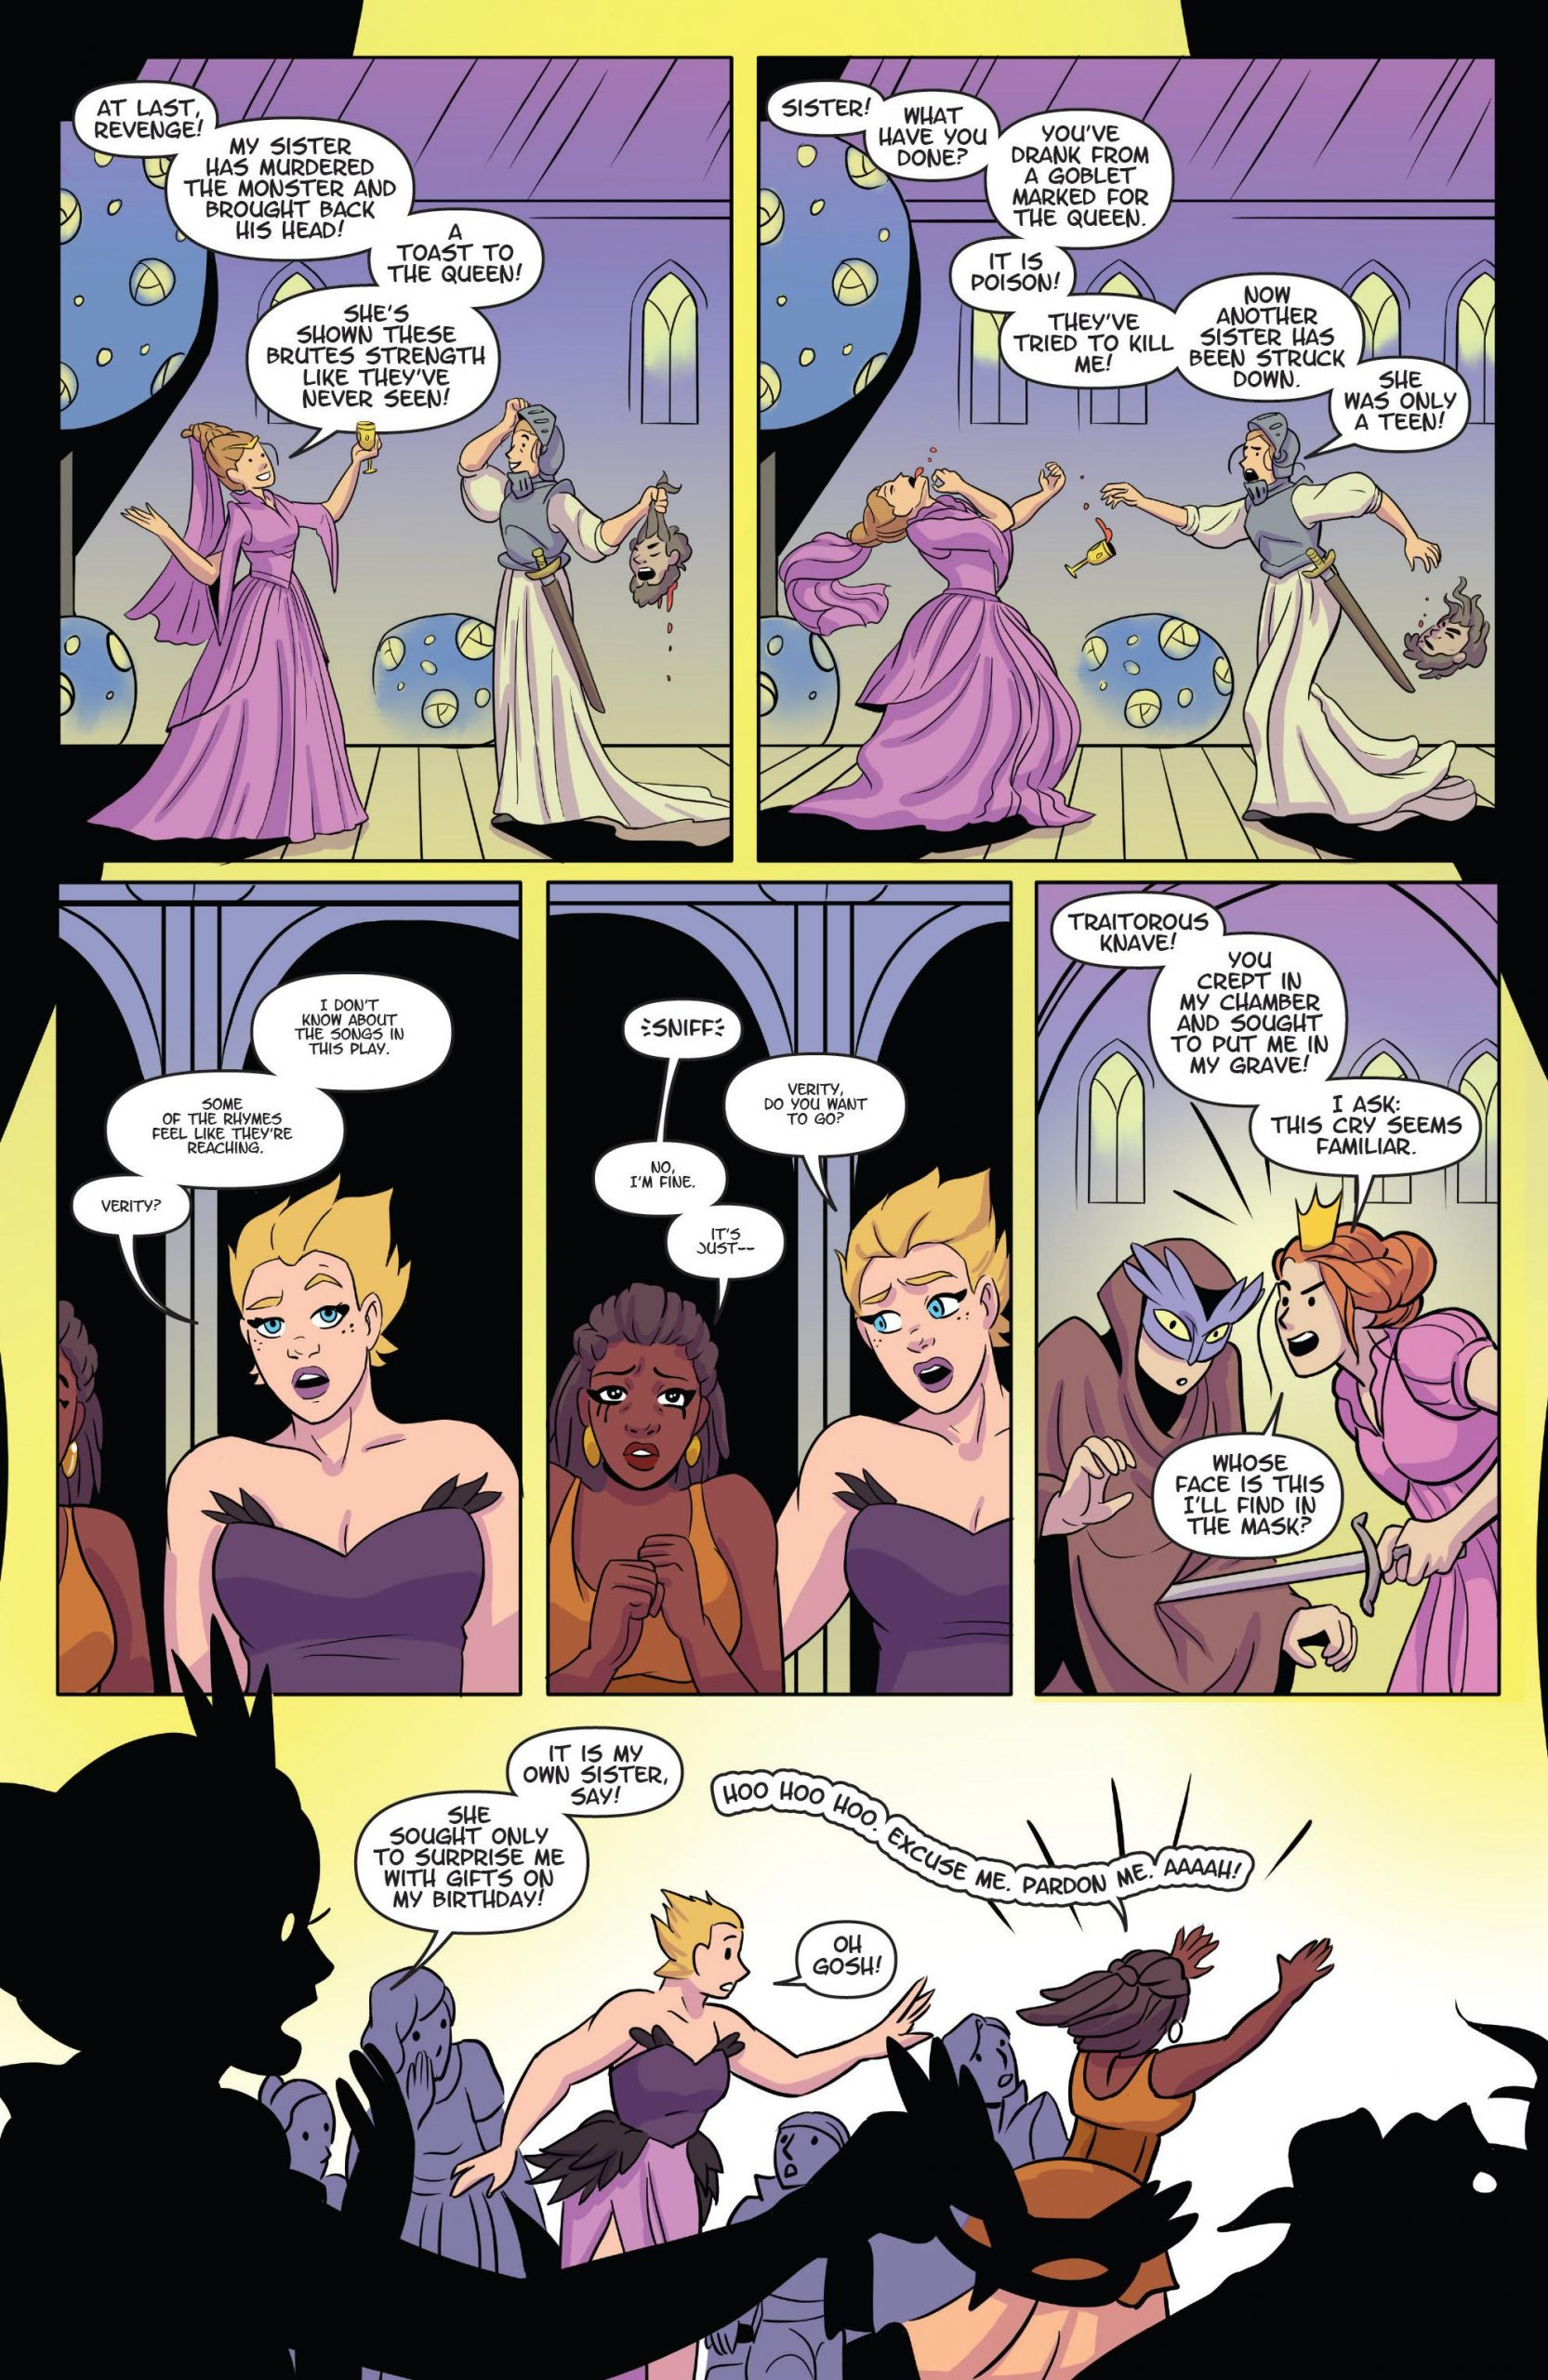 Raven - The Pirate Princess v07 - Date Night review